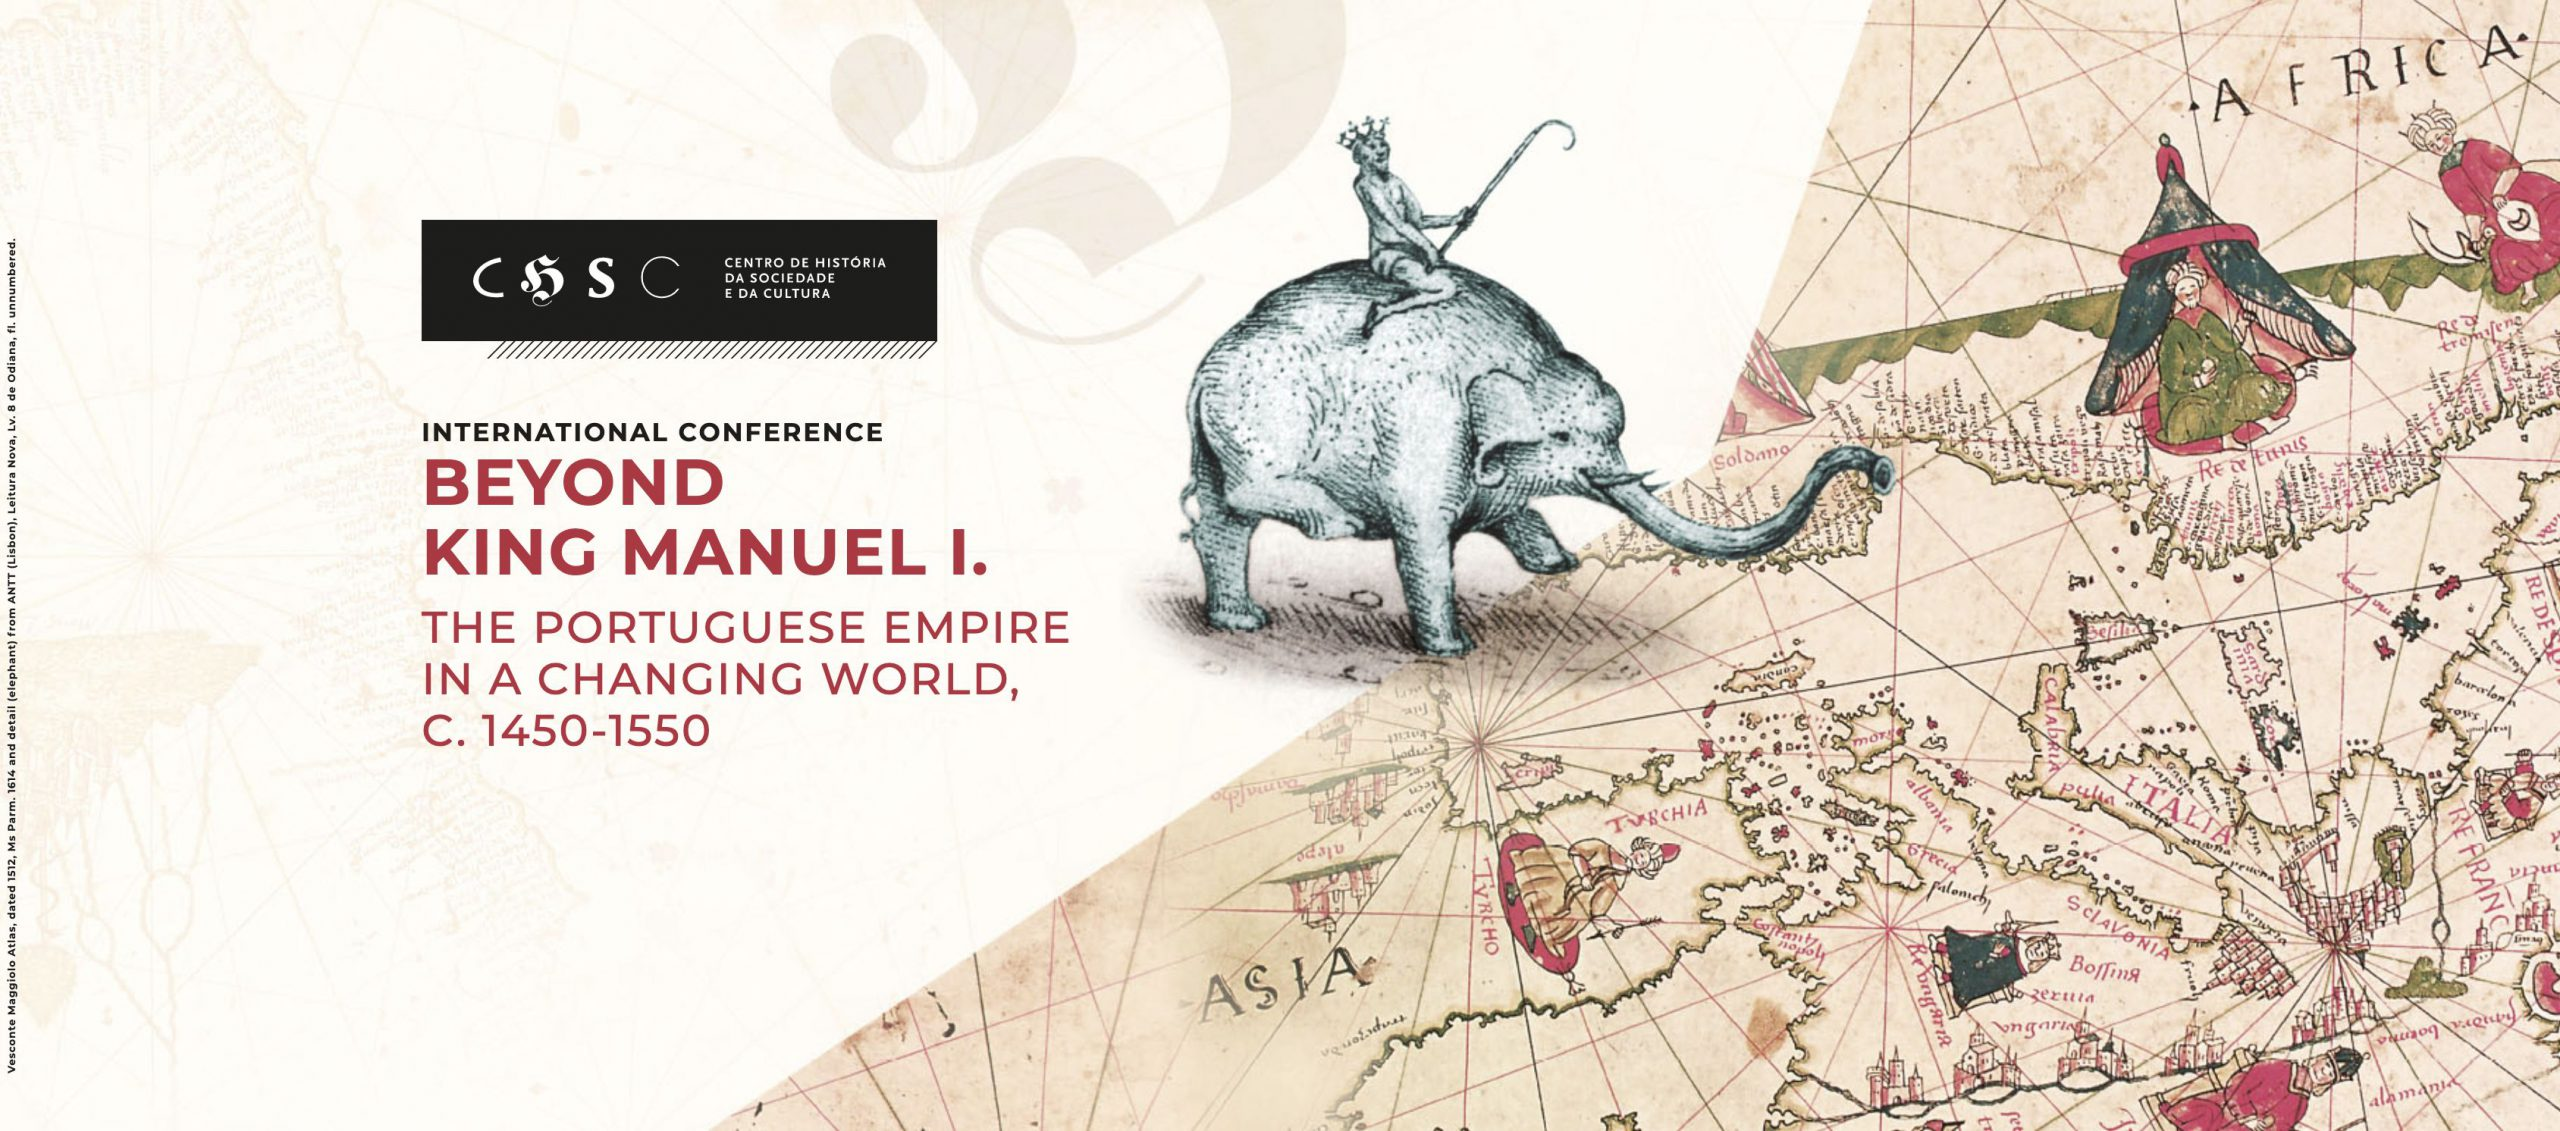 International Conference Beyond King Manuel I. The Portuguese Empire in a Changing World, c. 1450-1550. Launch Conference by Prof. Sanjay Subrahmanyam